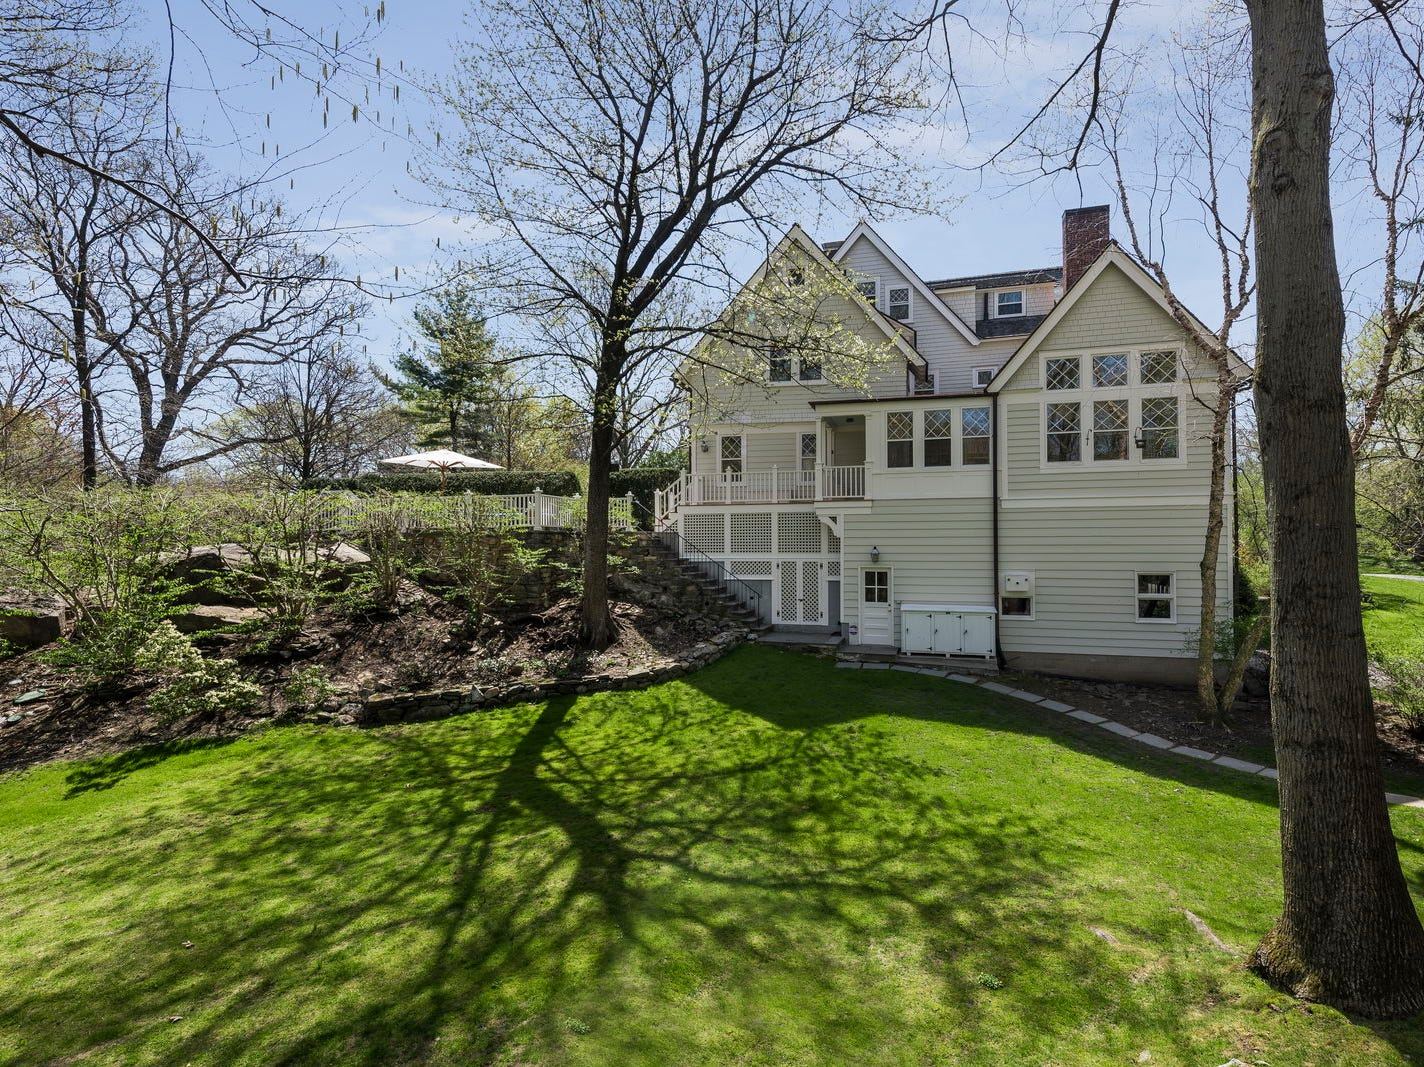 Famed aviation pioneer Ruth Rowalnd Nichols lived in this Rye home, now on the market. Built in 1880, the Shingle style colonial offers significant acreage for Rye at 3.3 acres and also includes a carriage house. The residence has had a modern renovation.